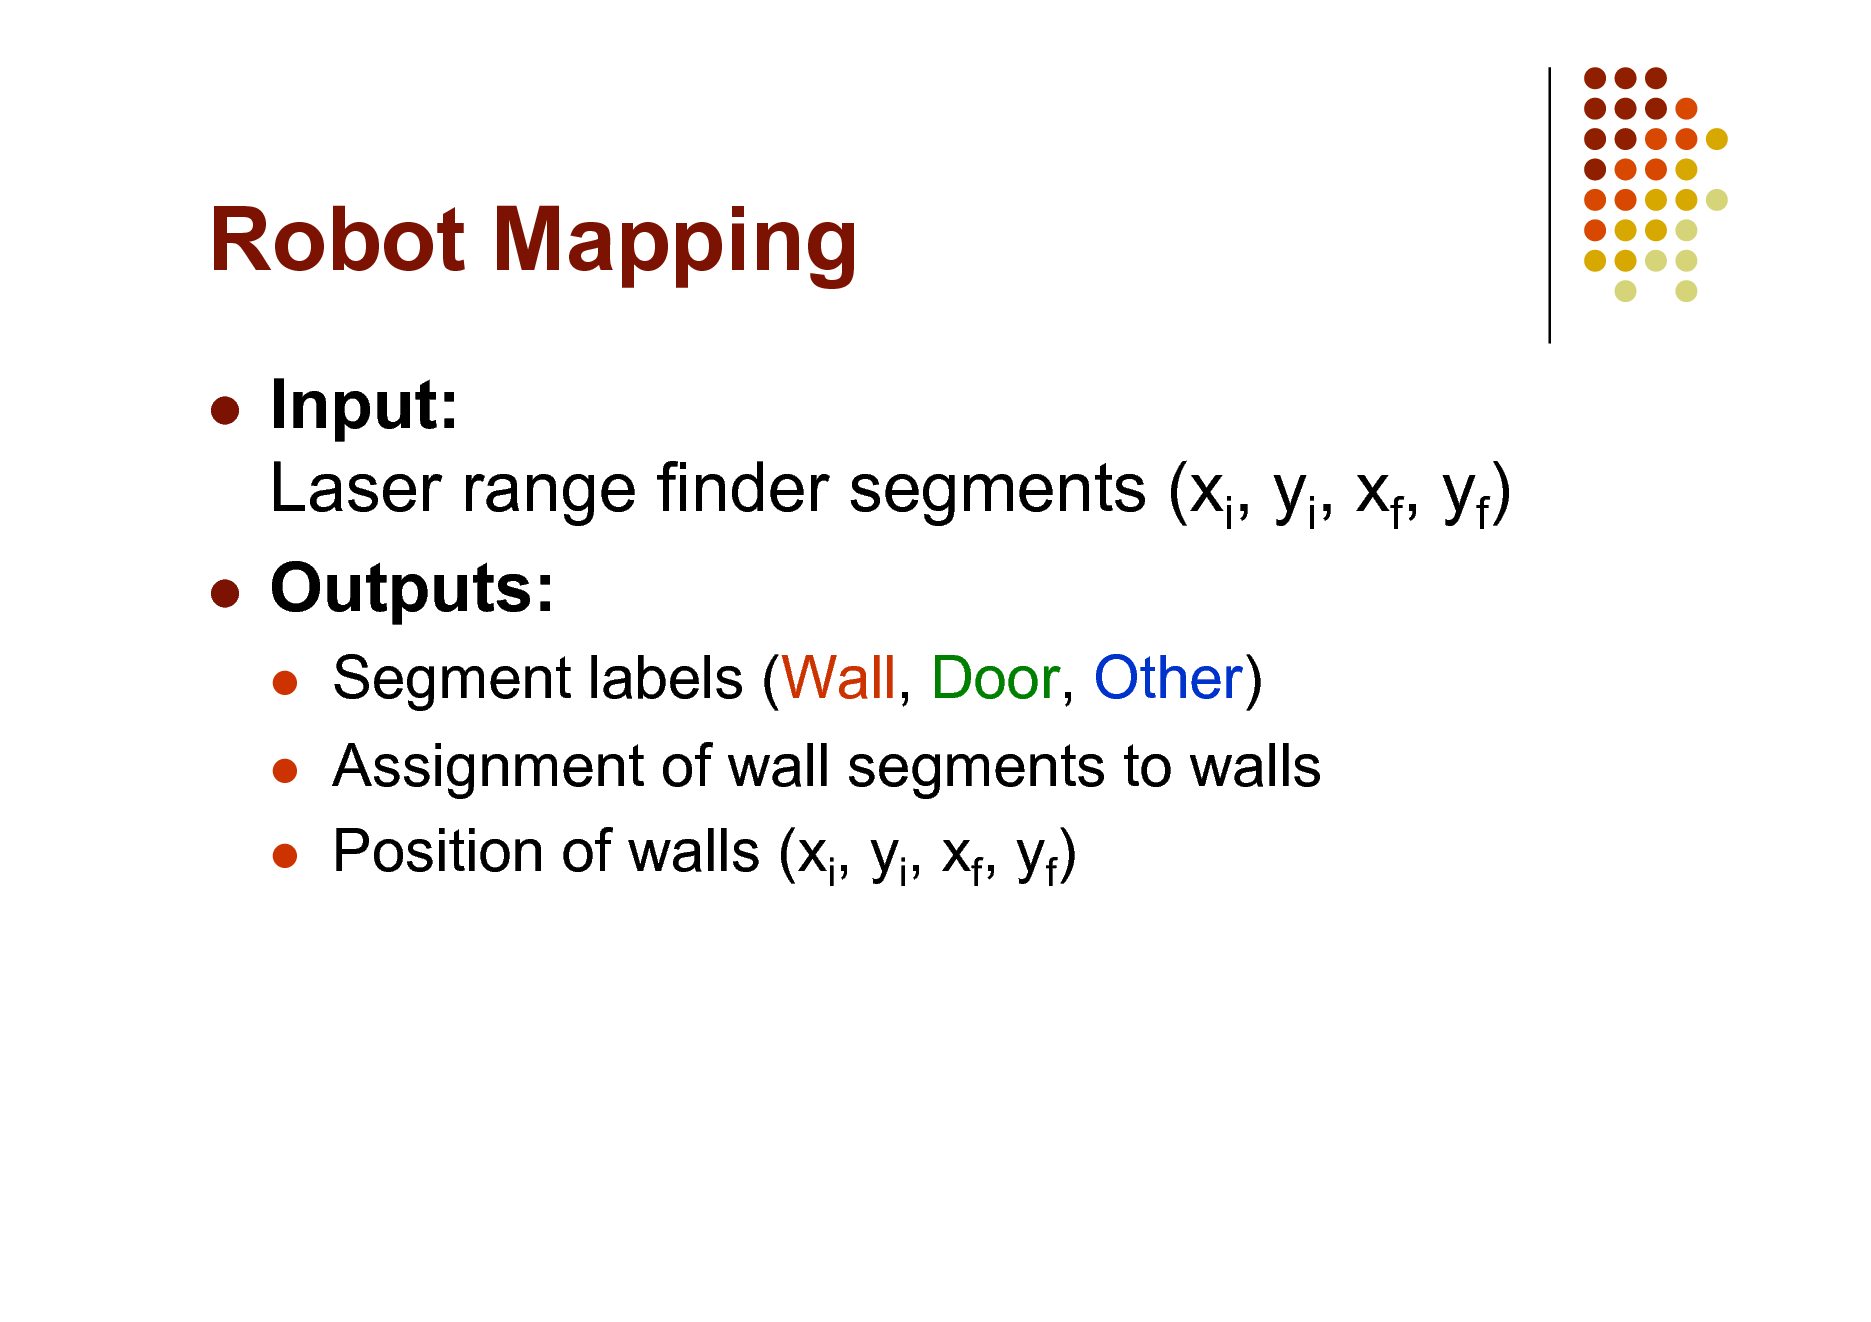 Slide: Robot Mapping Input: Laser range finder segments (xi, yi, xf, yf)  Outputs:      Segment labels (Wall, Door, Other) Assignment of wall segments to walls Position of walls (xi, yi, xf, yf)